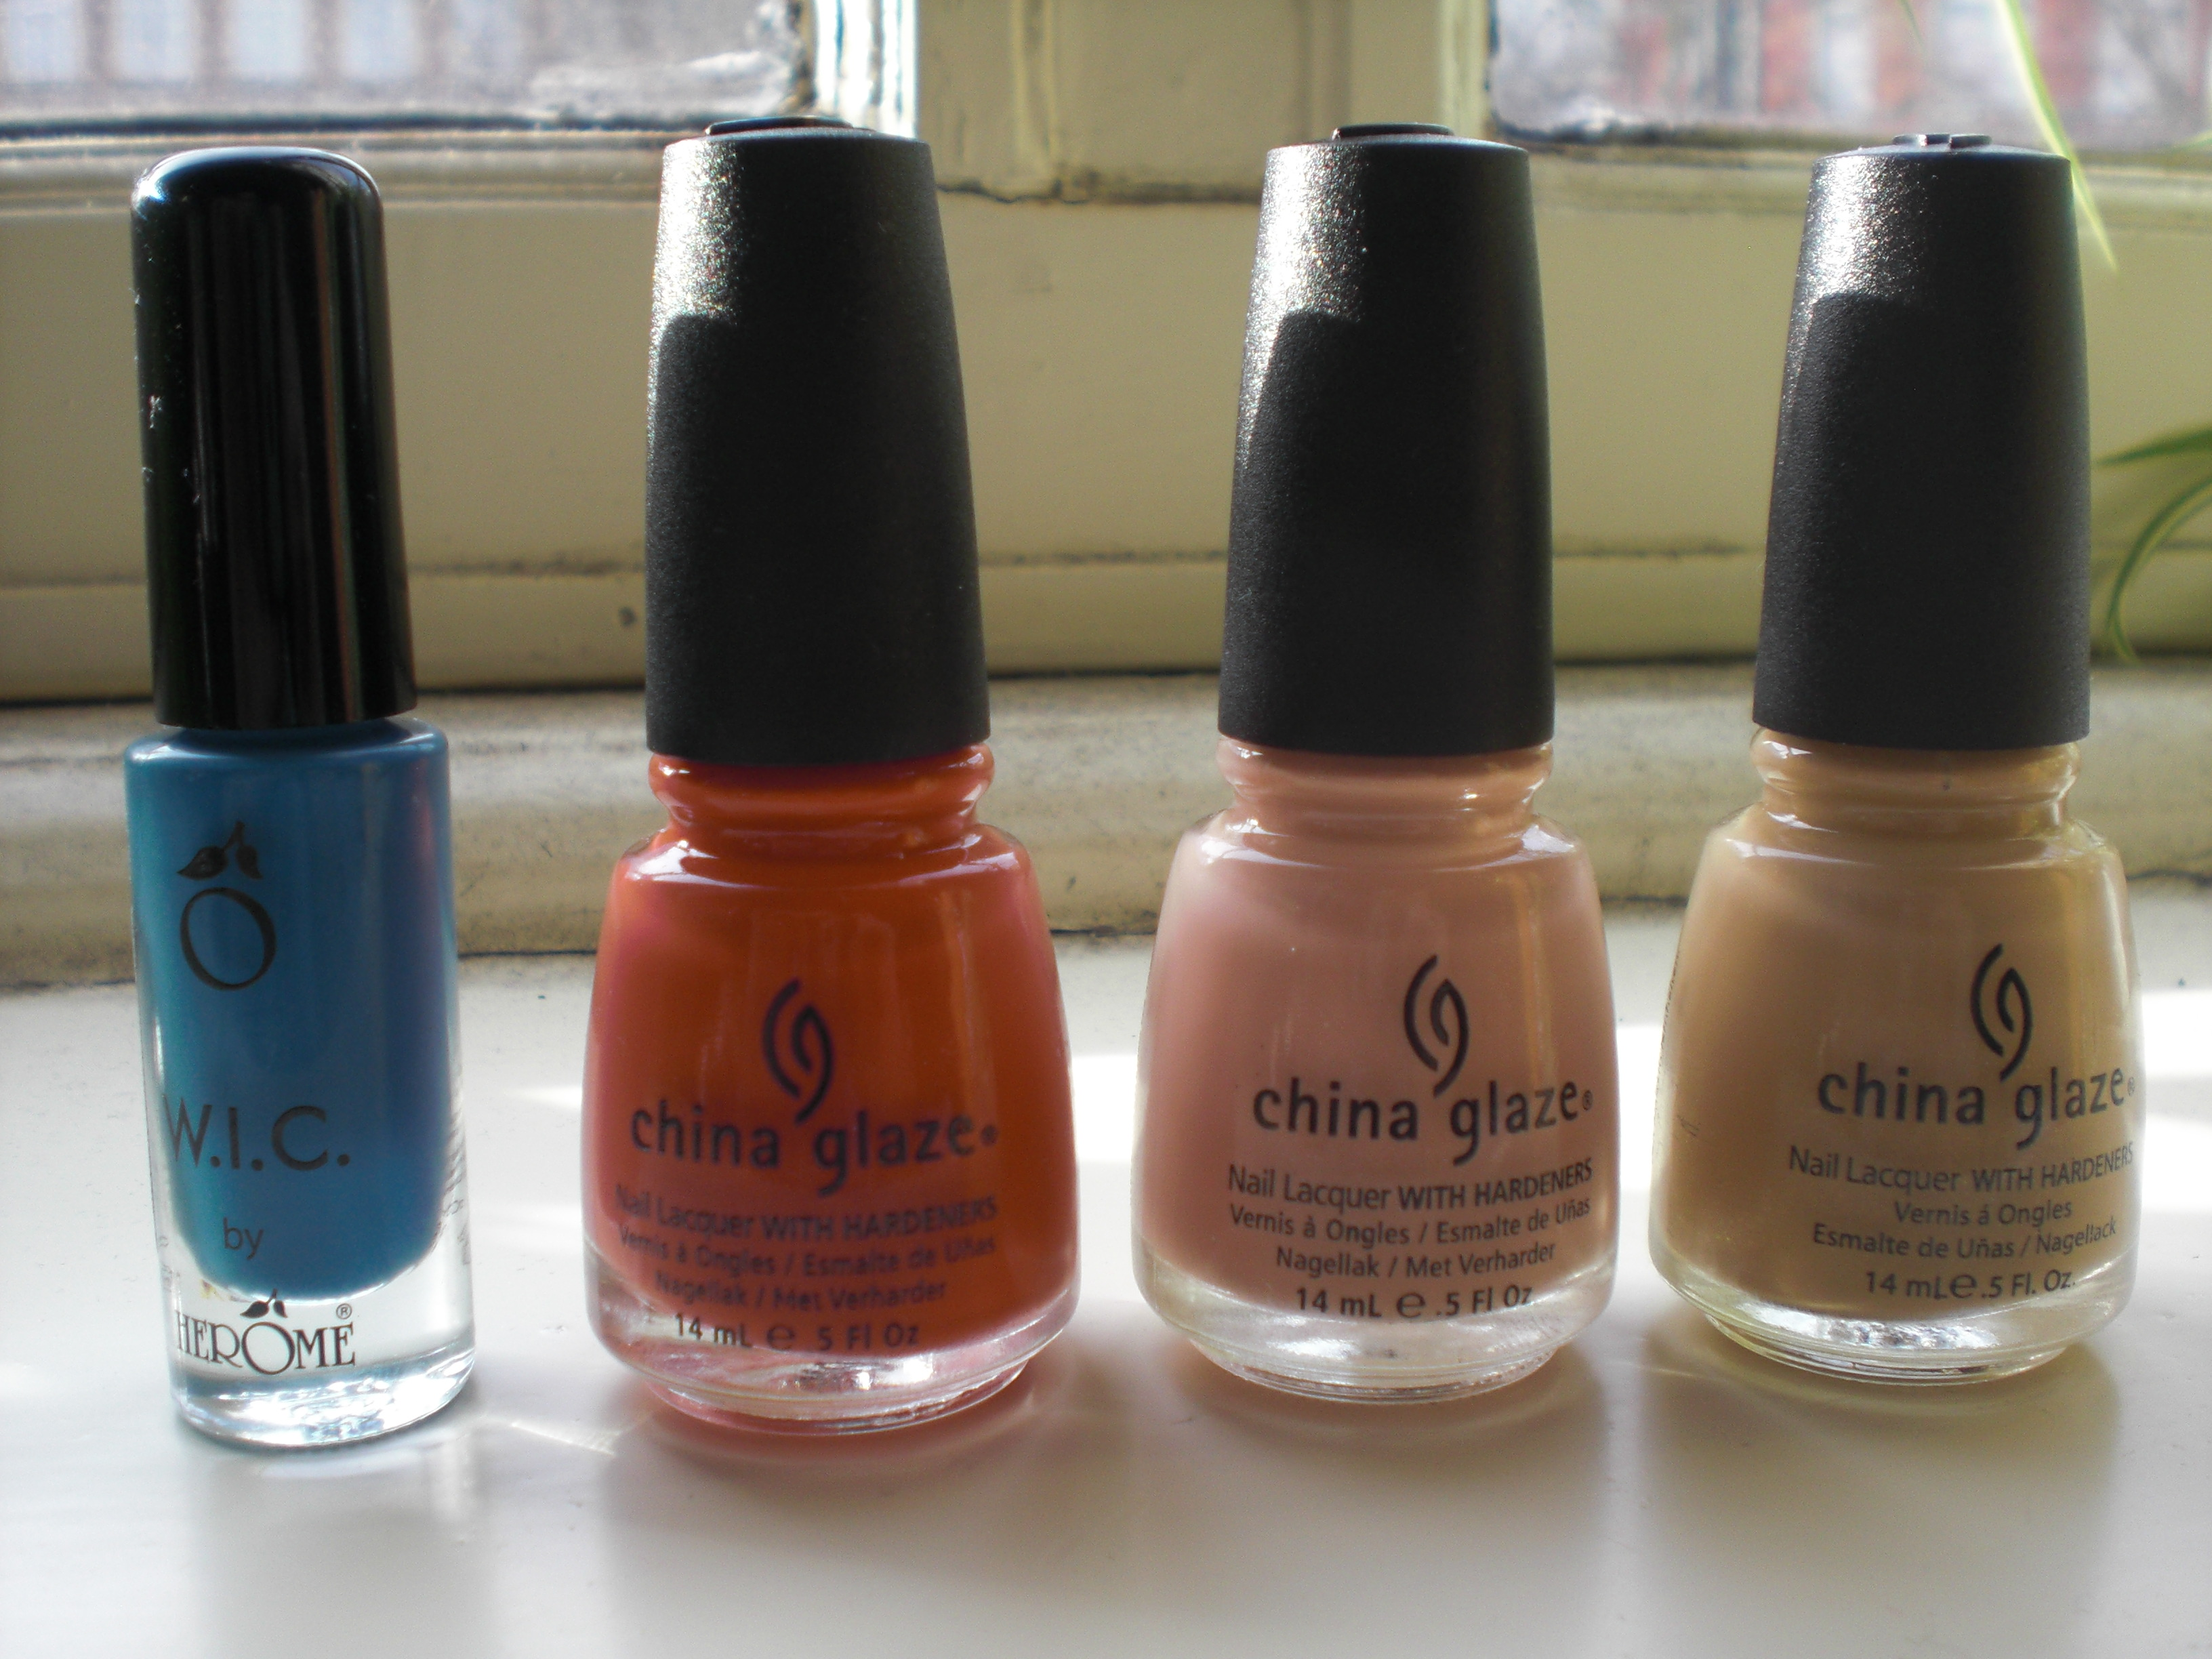 Nail Polish Haul – OPI, China Glaze & Hérôme – Floating in dreams